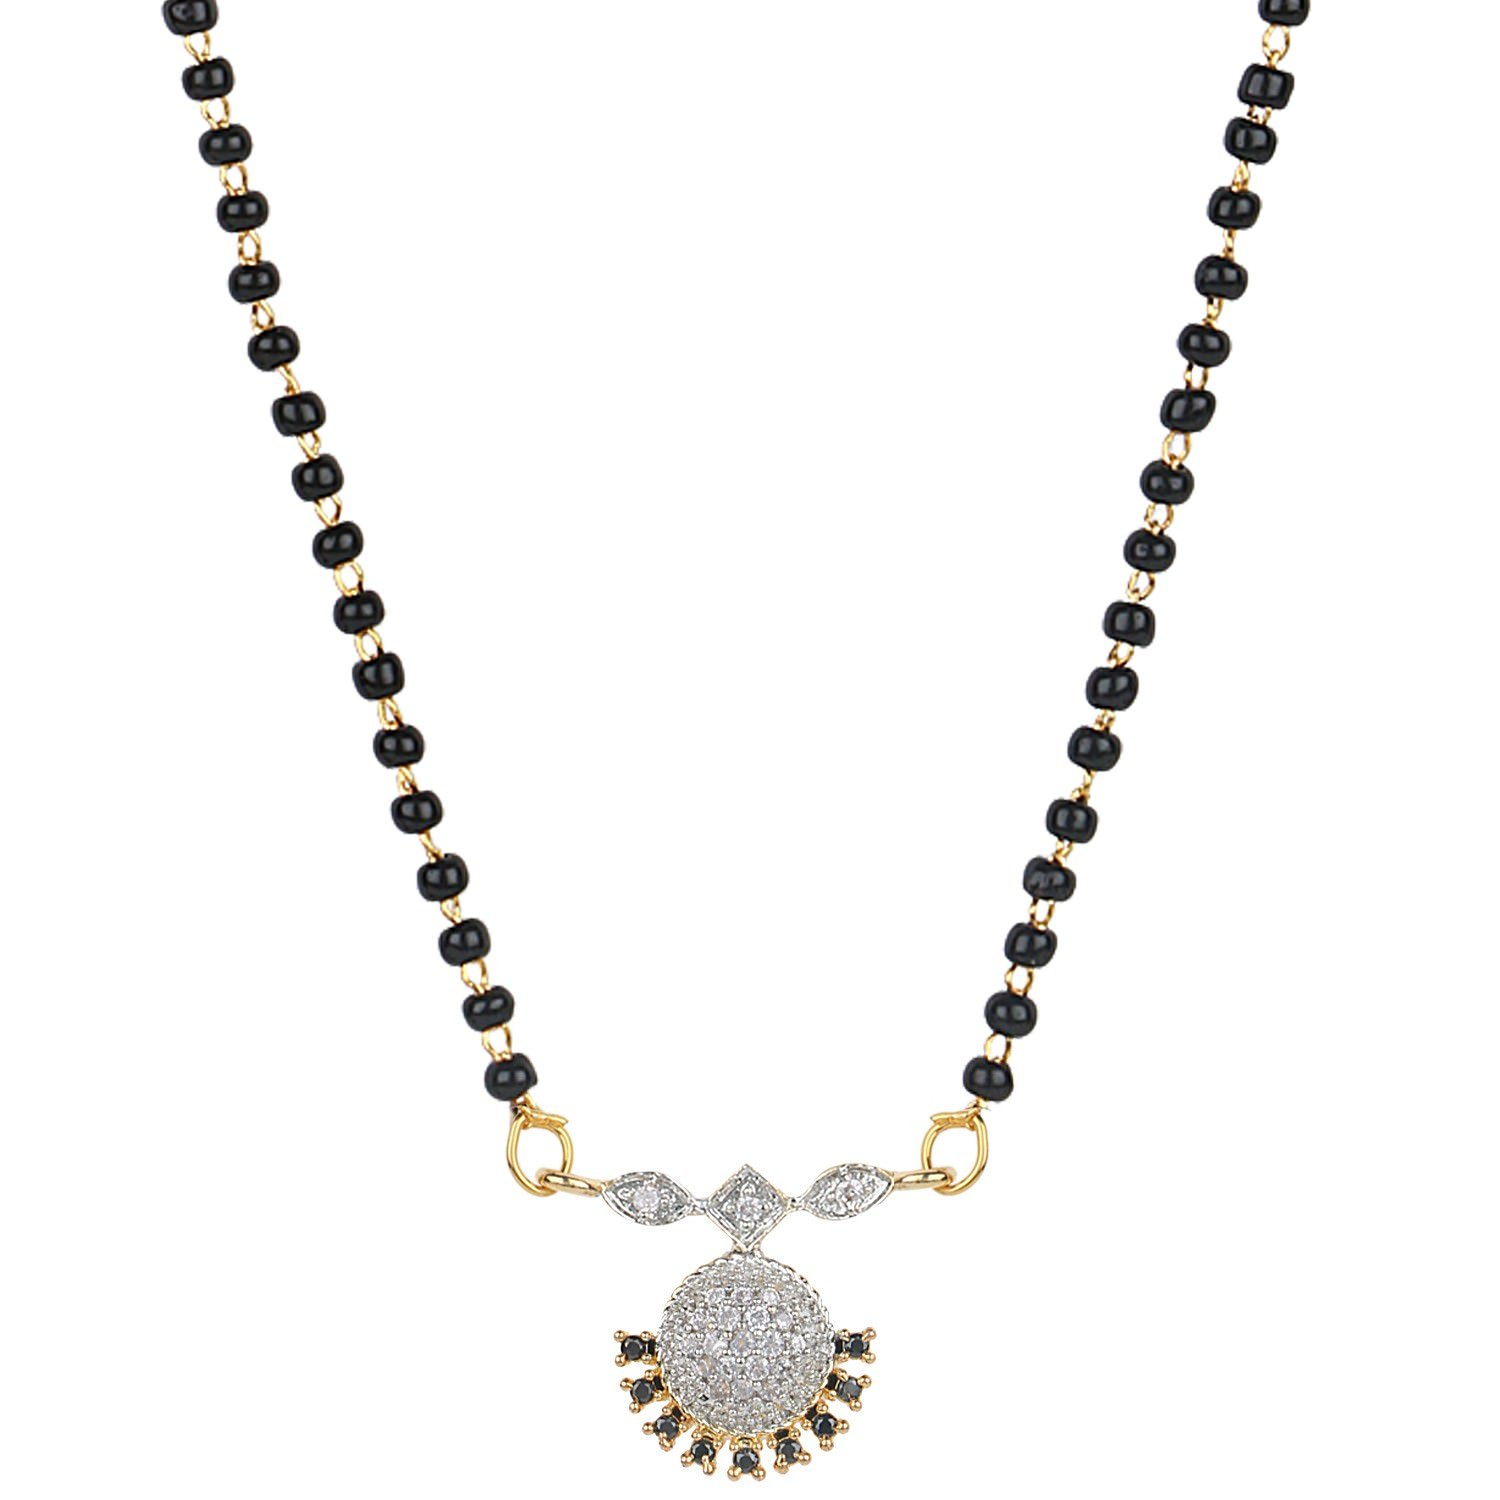 Efulgenz Indian Bollywood Ethnic Traditional Gold Plated CZ Mangalsutra Pendant Necklace set jewelry for Women